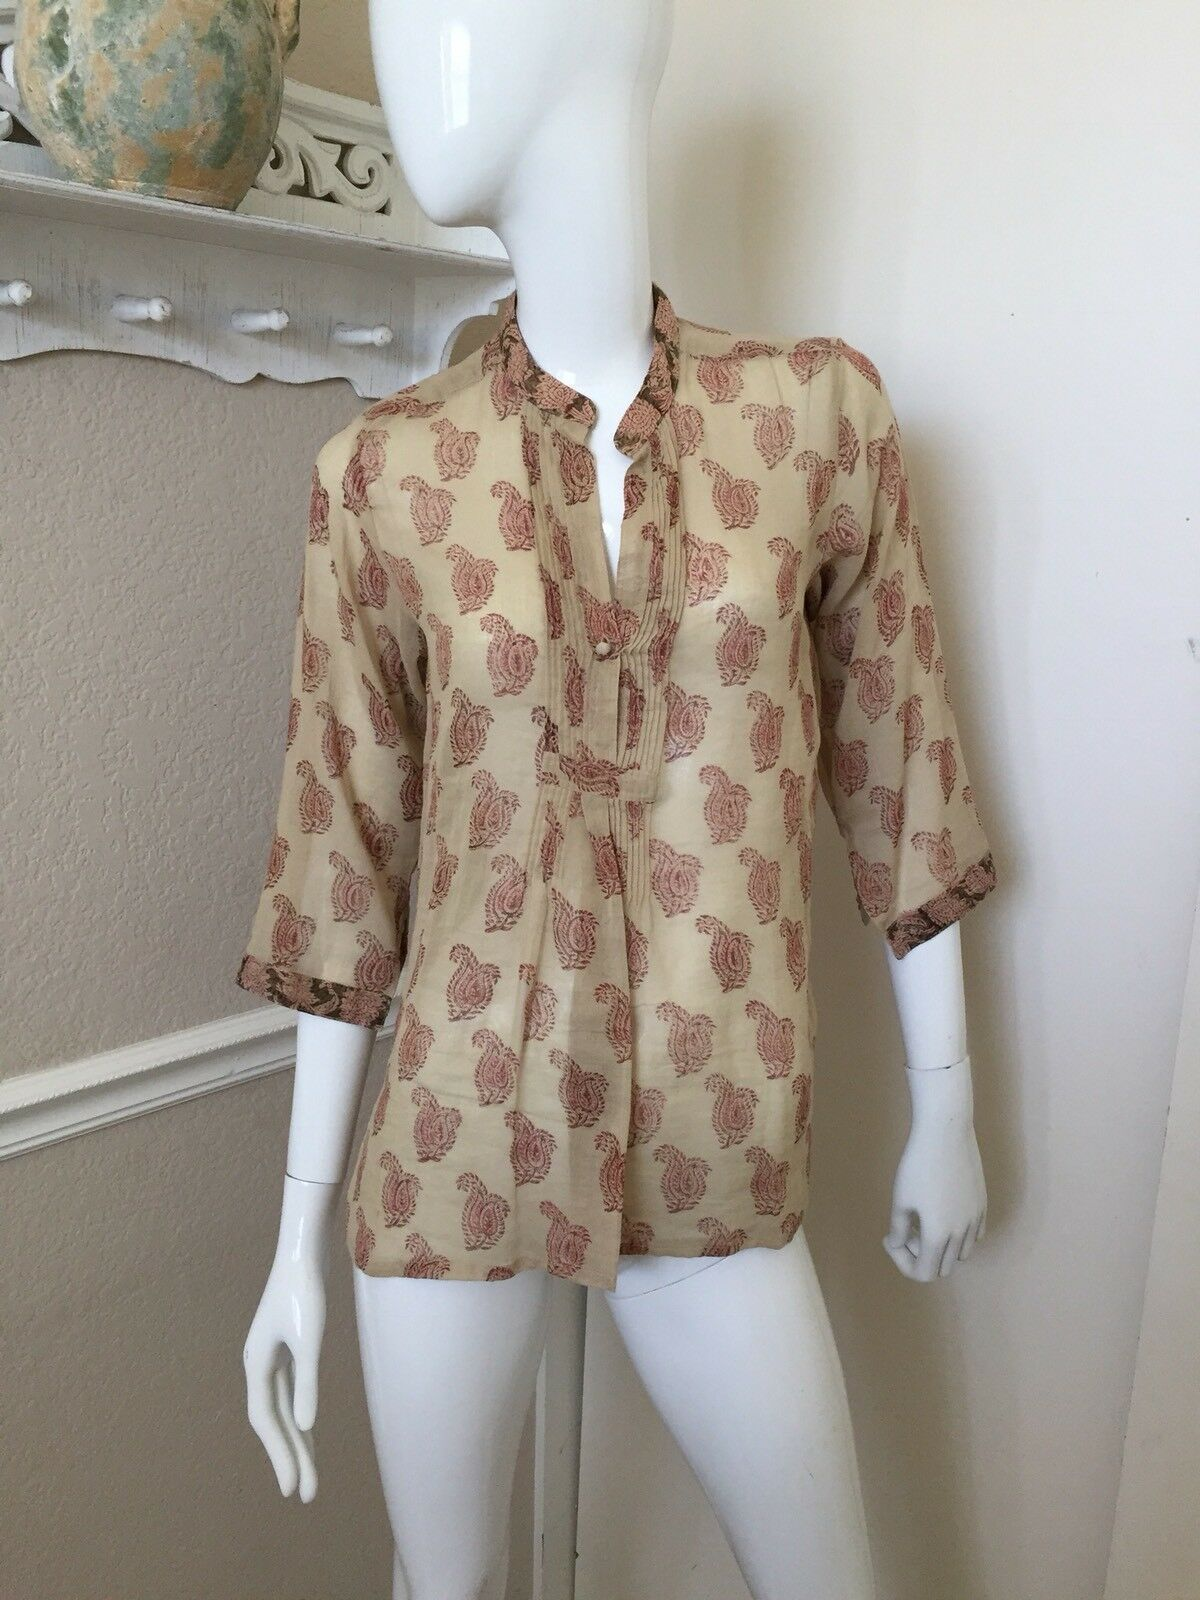 Anokhi NEW  100% Cotton Beige Rust Paisley Pattern Tunic Shirt Sz S NWOT